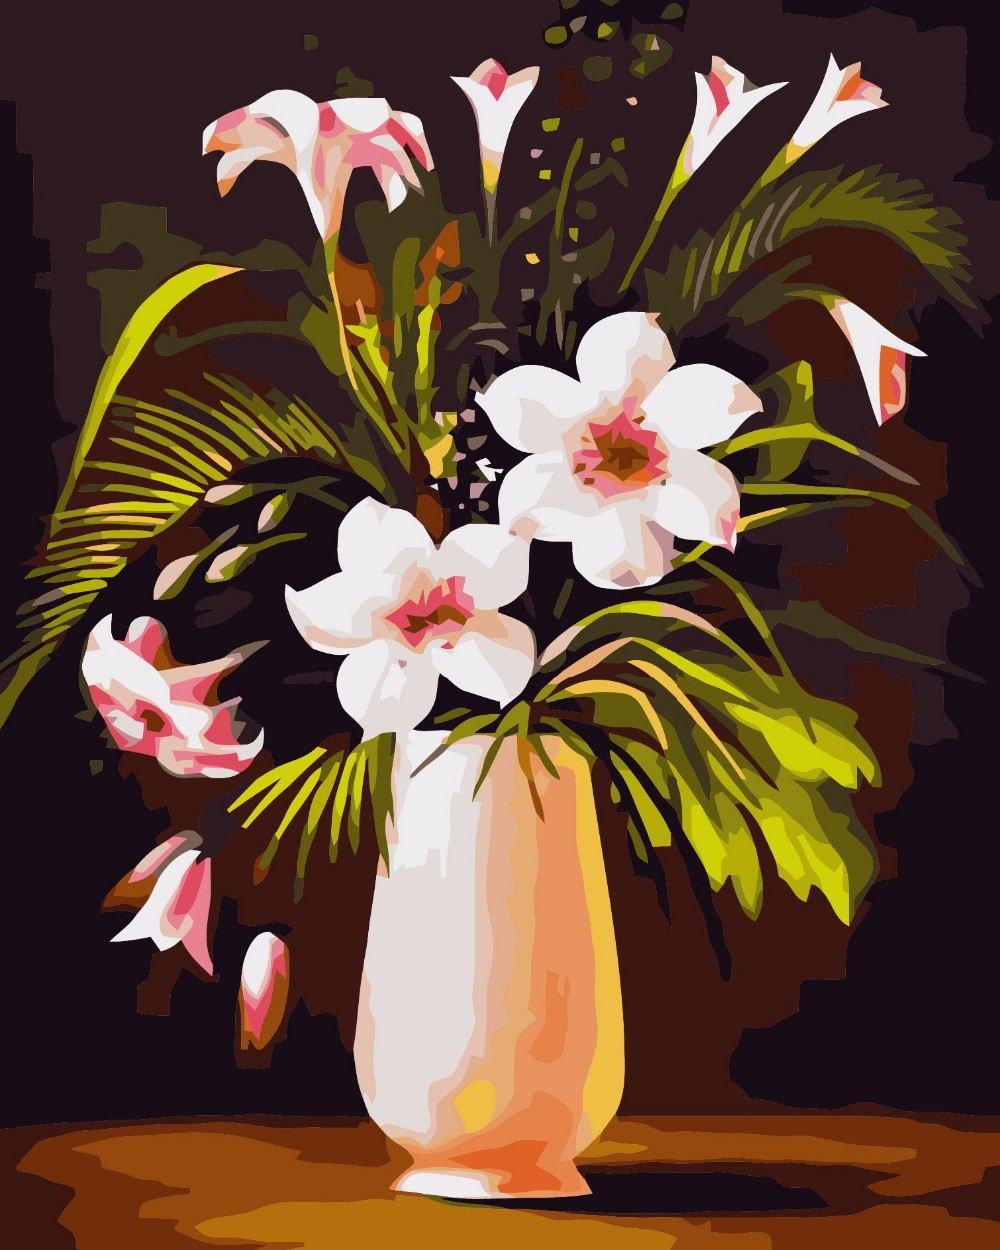 1000x1250 Gallery Drawing Of New Flowers In Vase,